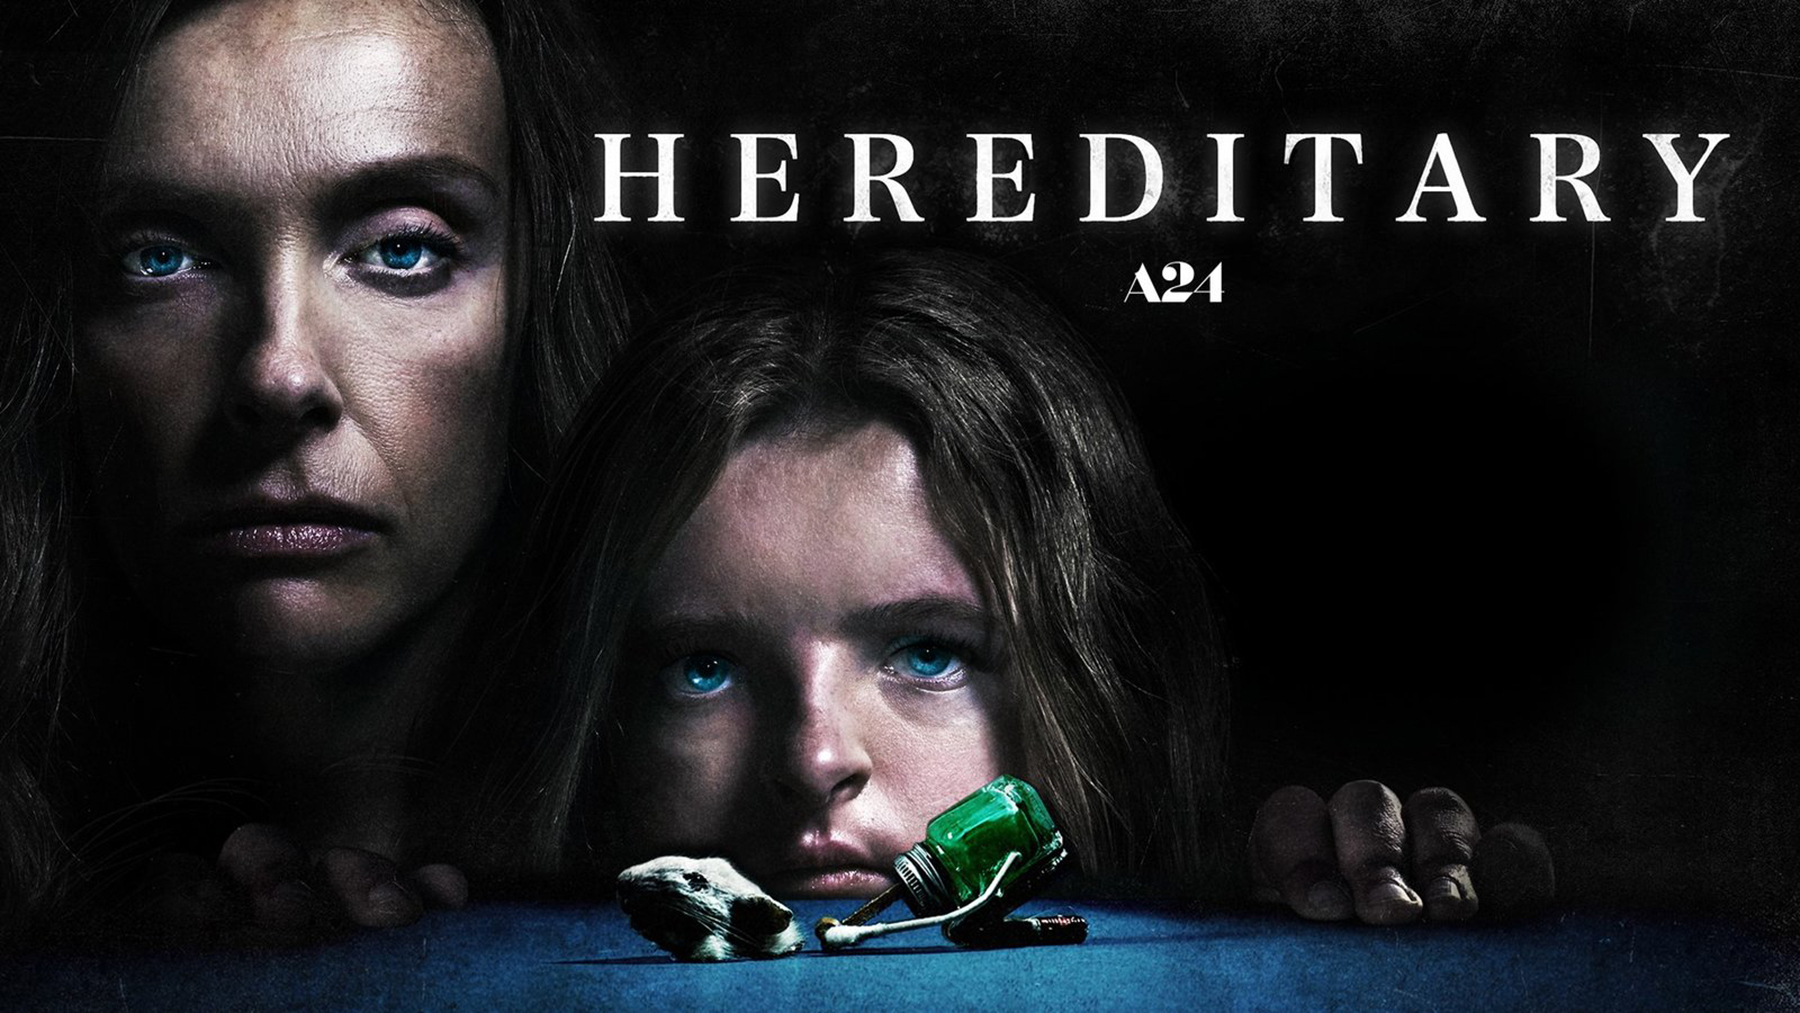 film poster for 'Hereditary'